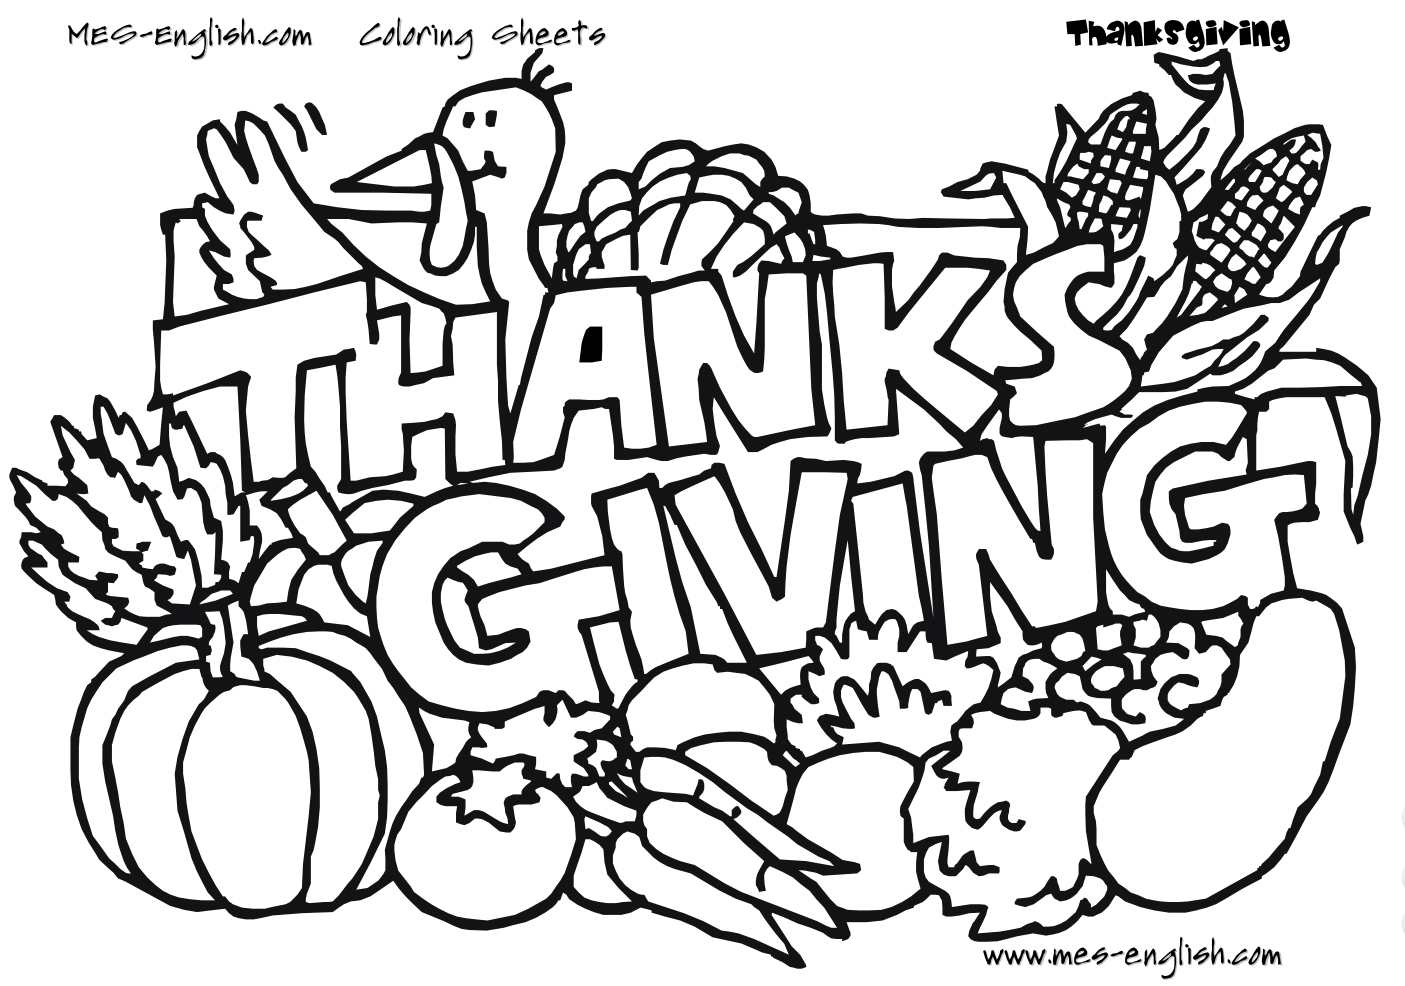 thanksgiving coloring pages for toddlers Free Thanksgiving Coloring Pages for Kids thanksgiving coloring pages for toddlers